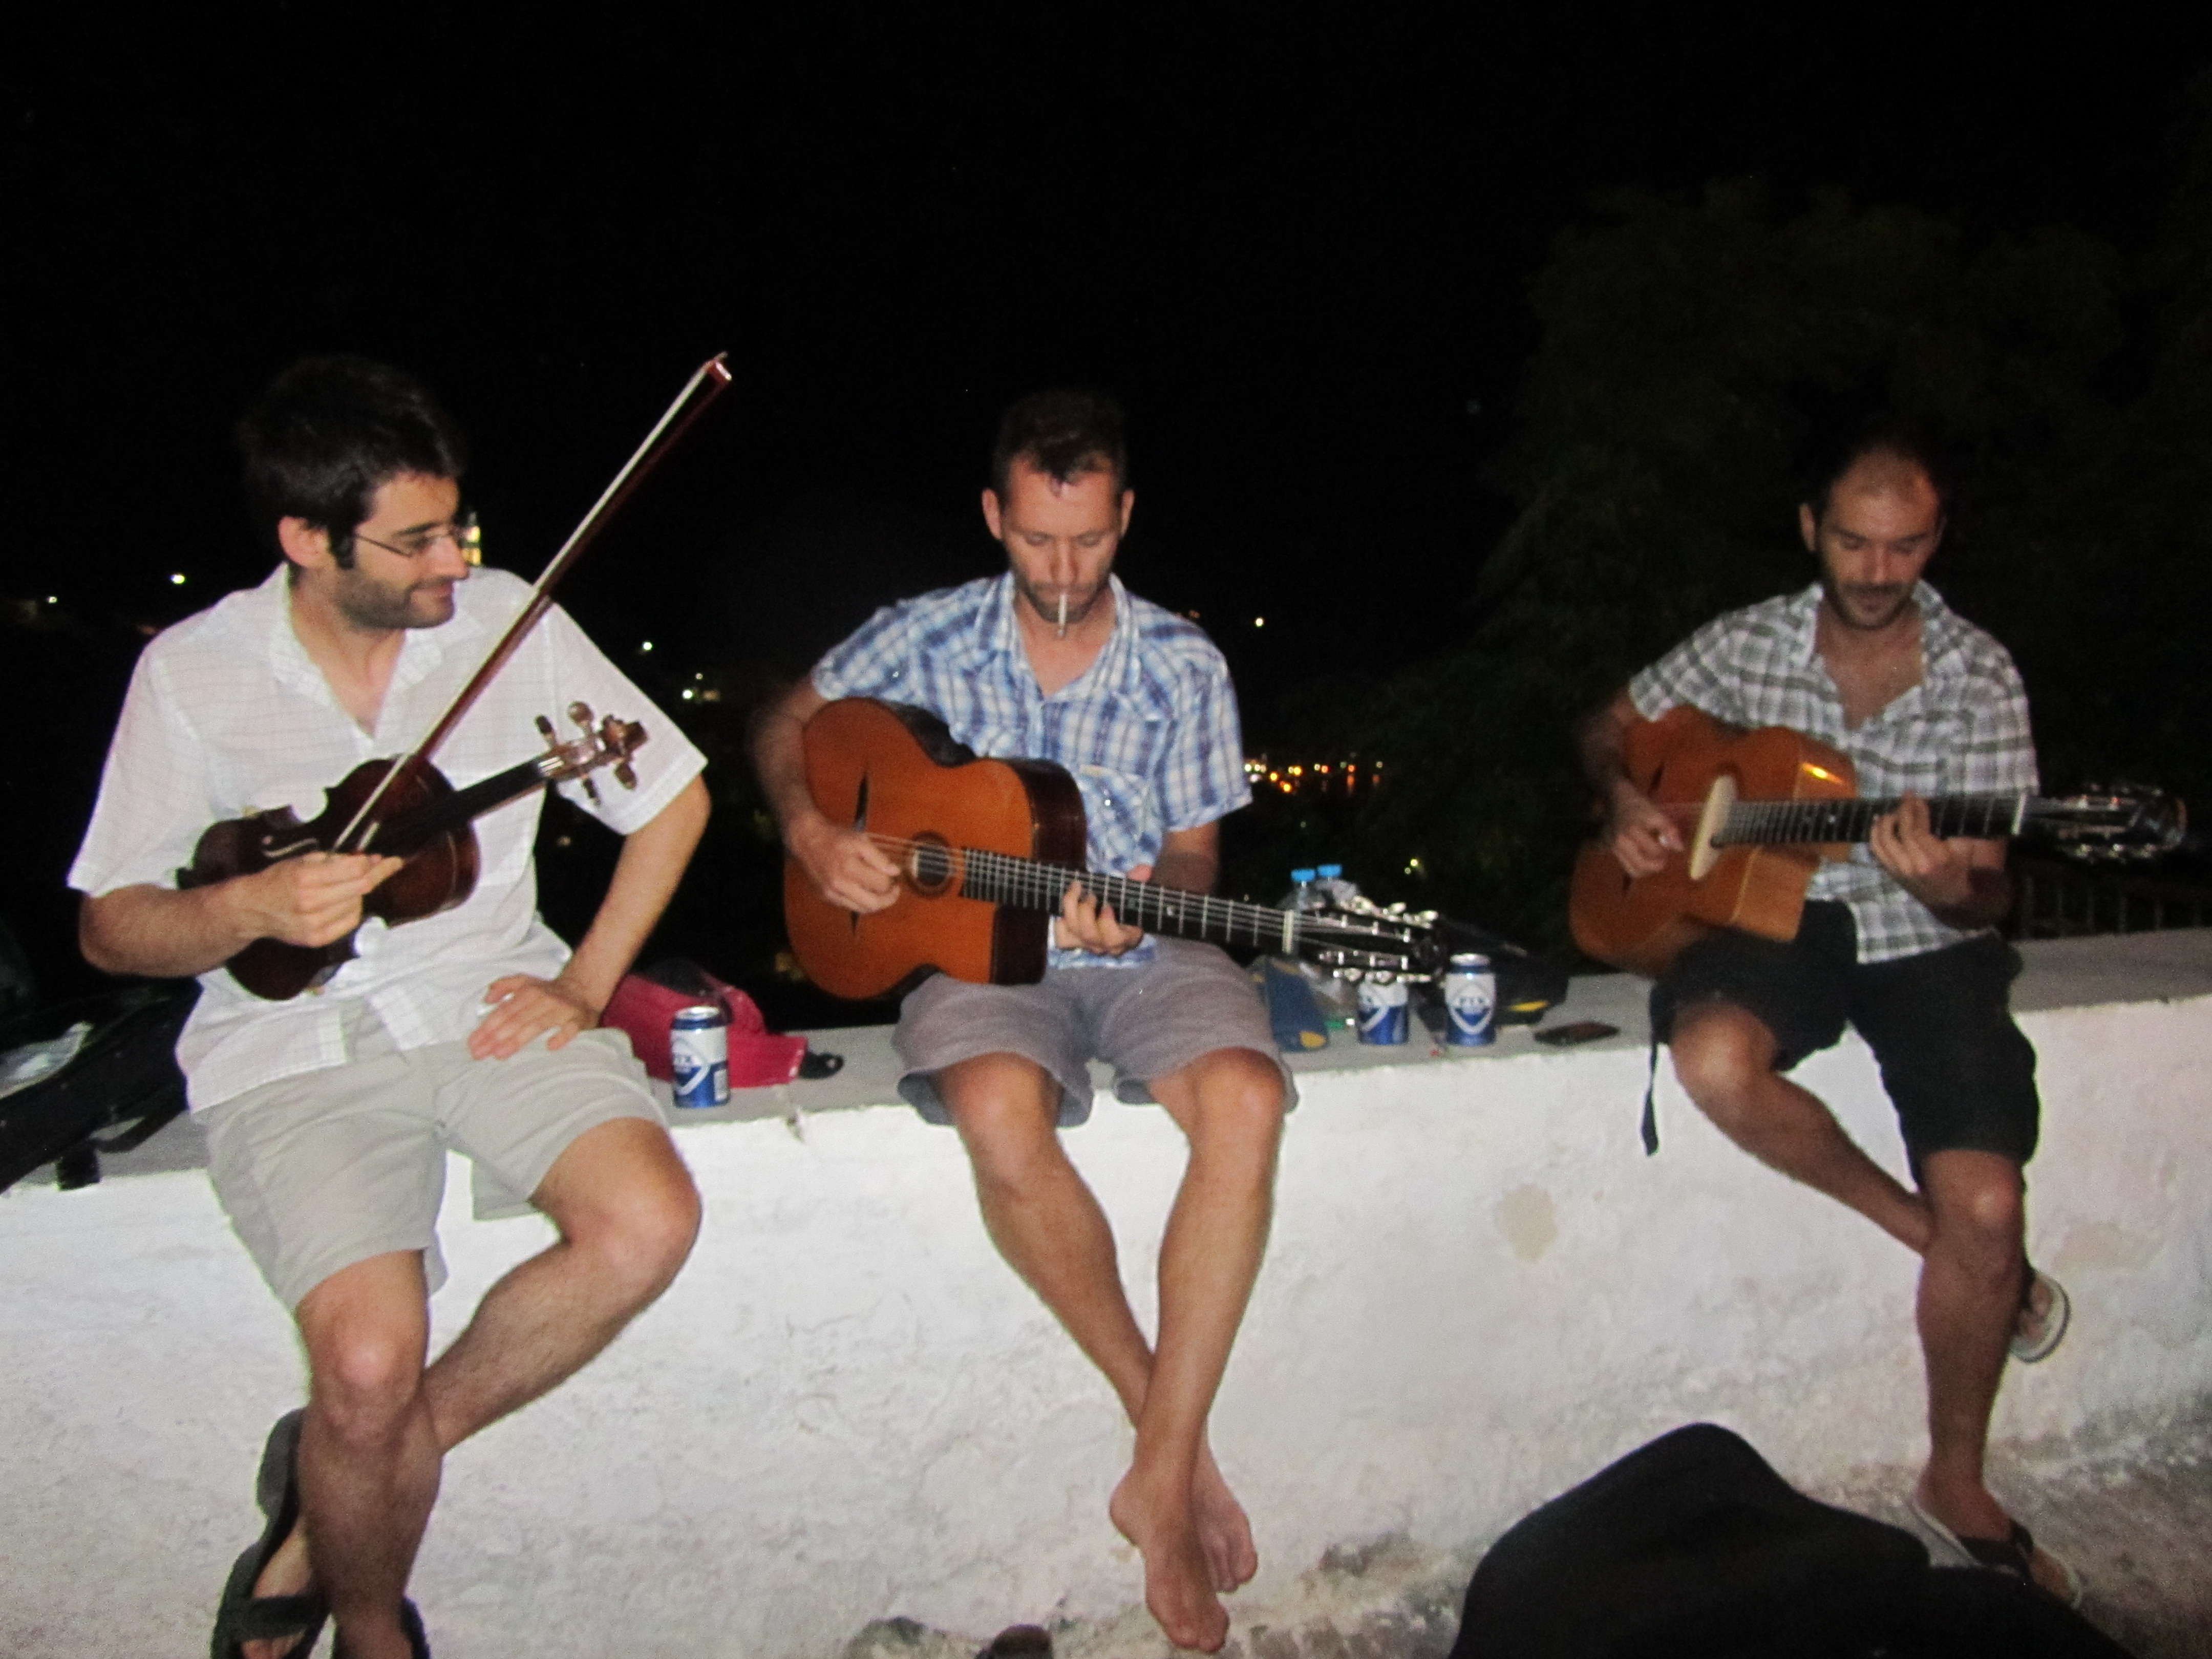 Busking on the island of Syros with good friends Manolis and George